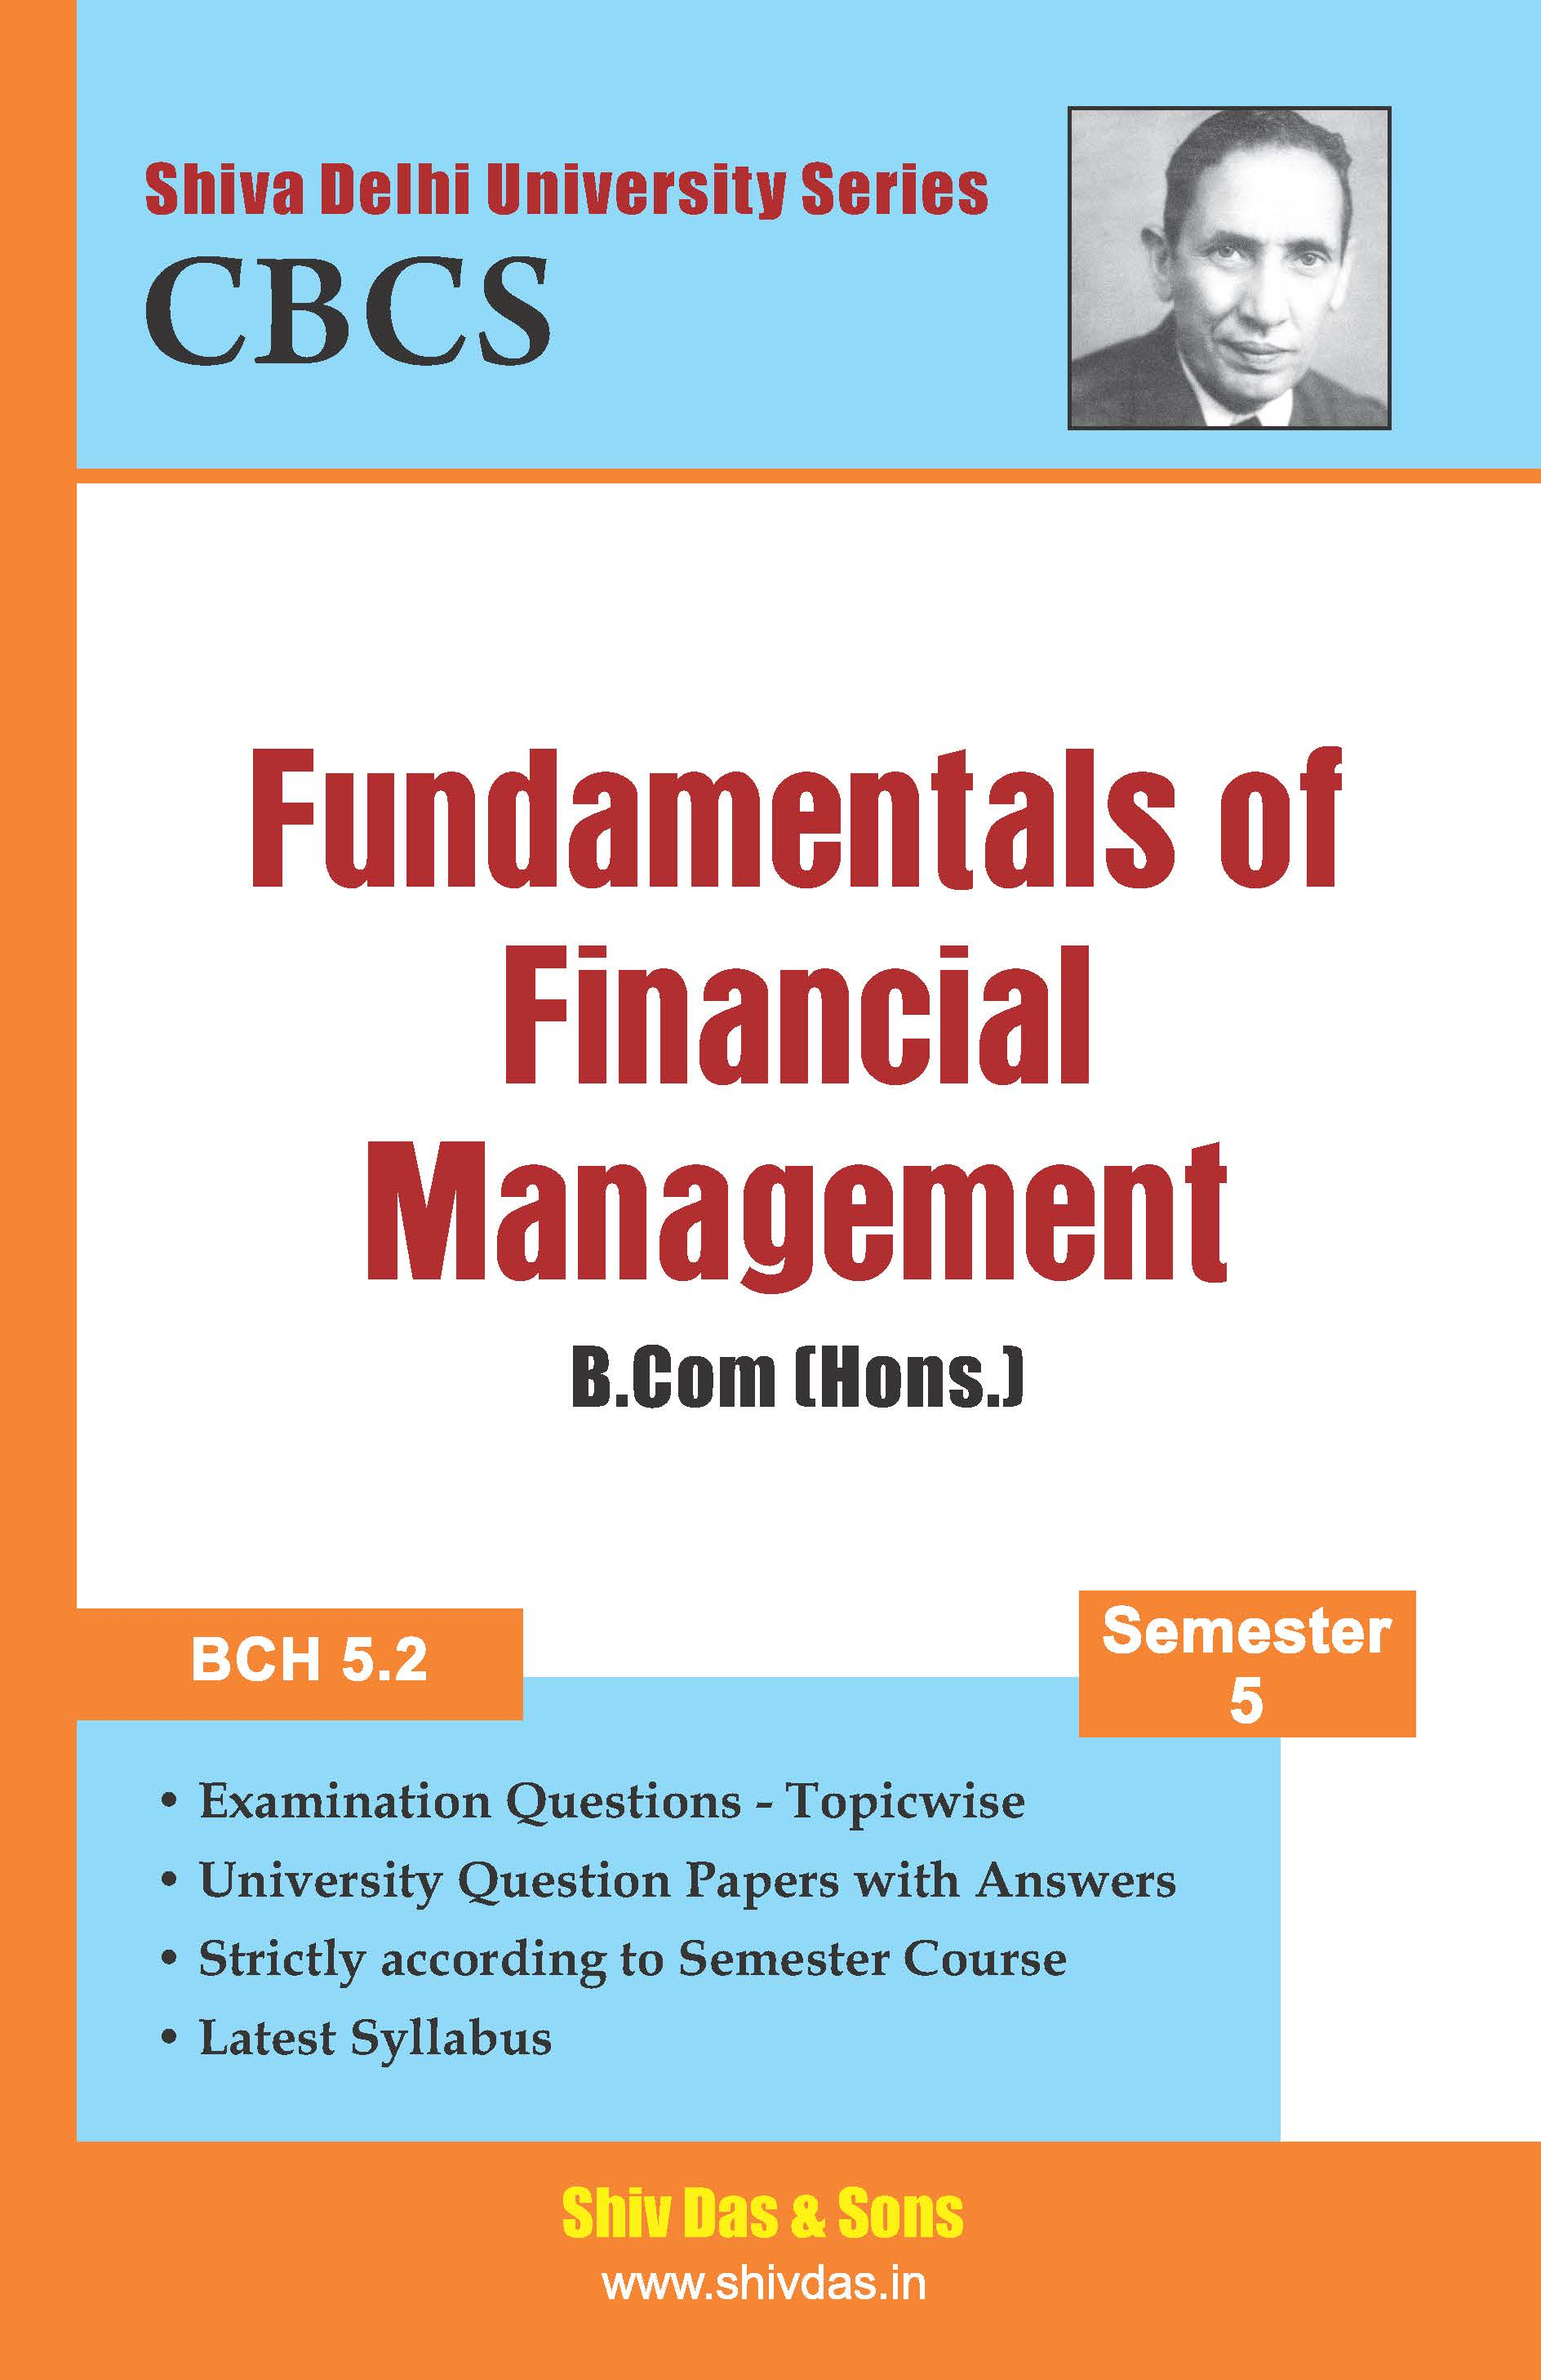 B.Com [Hons.] Semester-5 Fundamentals of Financial Management